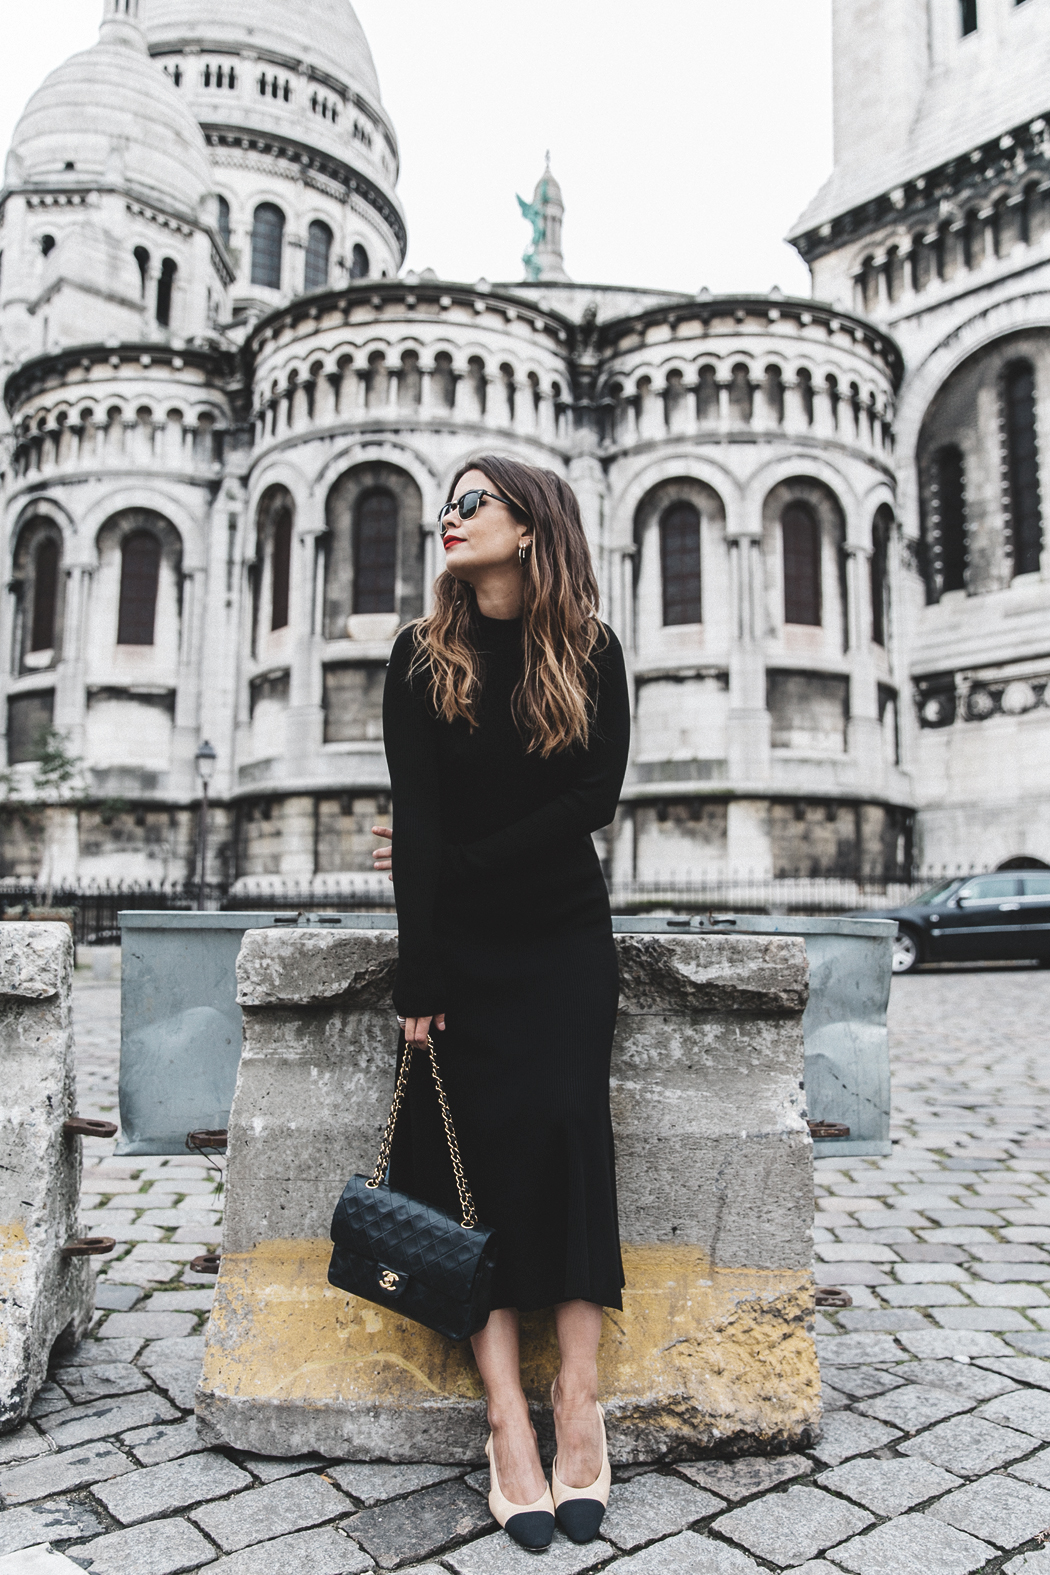 People are always saying spring is about bright colours, but does that mean you can't rock all black in spring? Hell no! Sara Escudero shows us how to own spring monochrome with this stylish black skirt and sweater combination! Dress: Zara, Bag: Chanel Vintage, Shoes: Chanel.